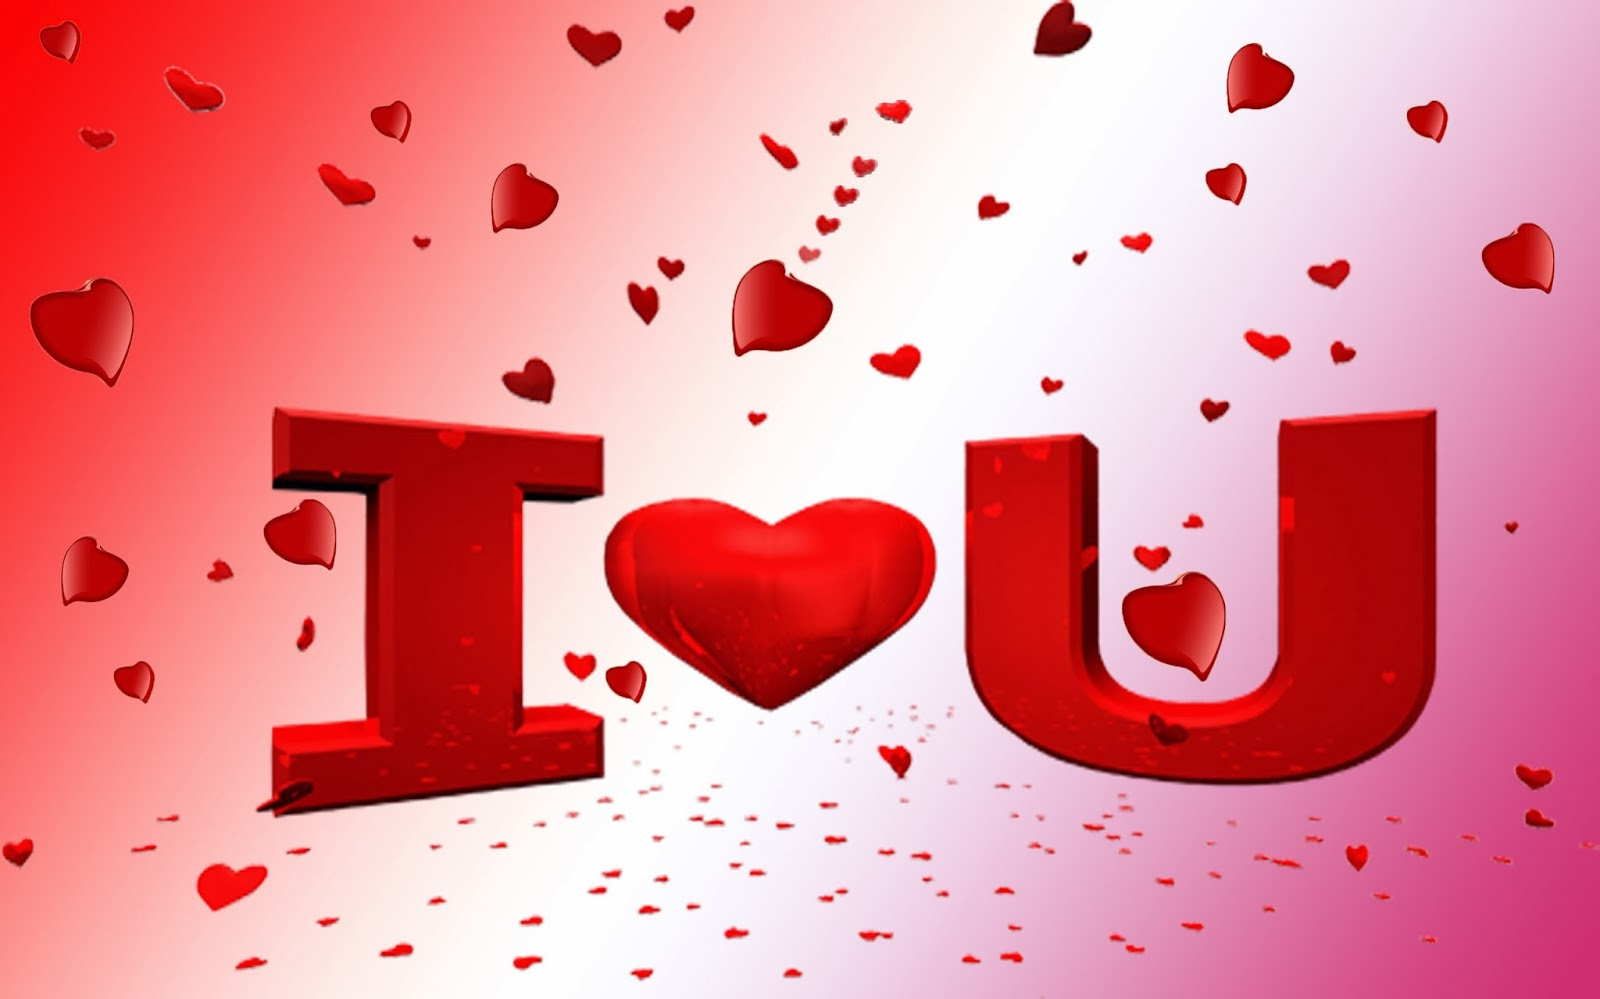 Happy-Valentines-Day-Walpaper-I-Love-You-For-Happy-Valentines-Day-Image-Wide